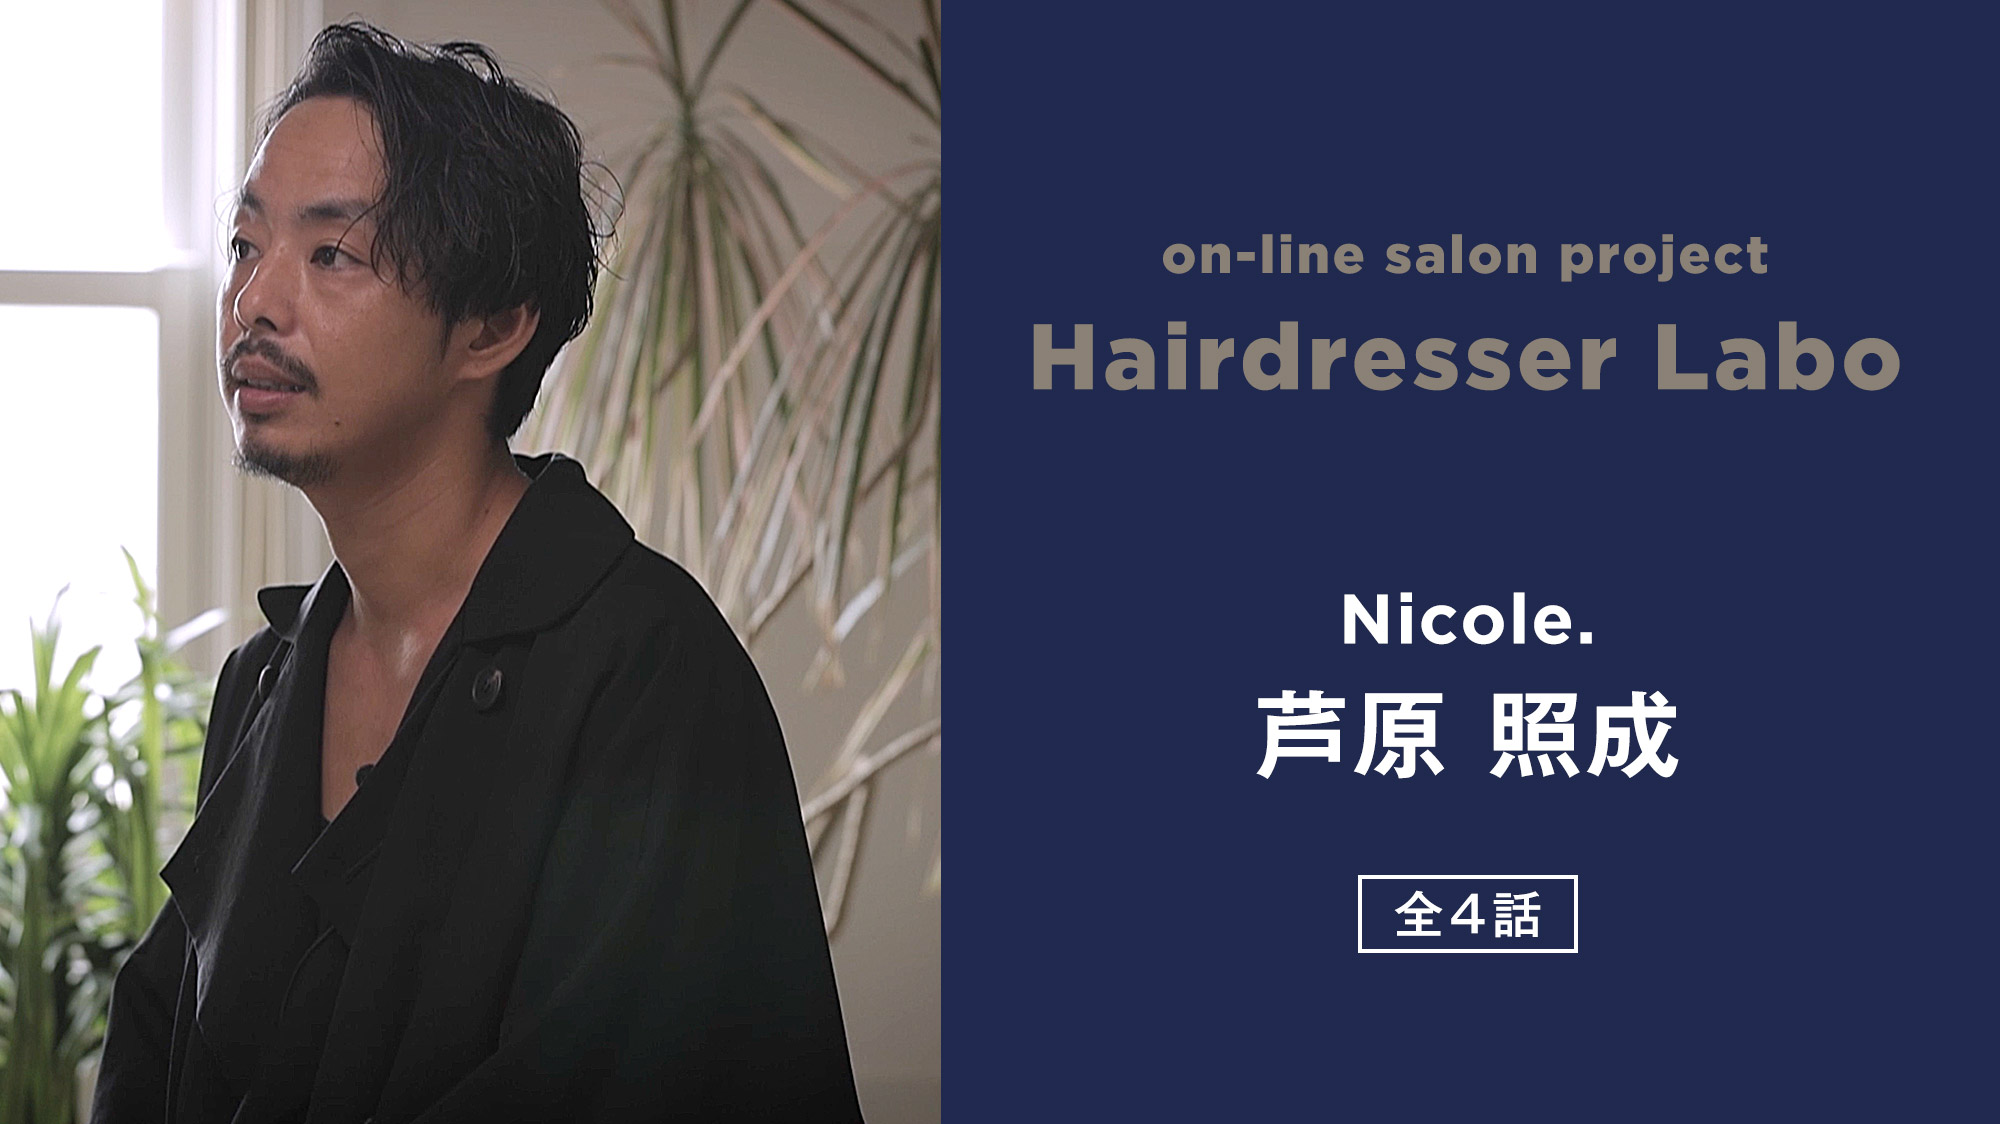 on-line salon project Hairdresser Labo『芦原 照成』 全4話